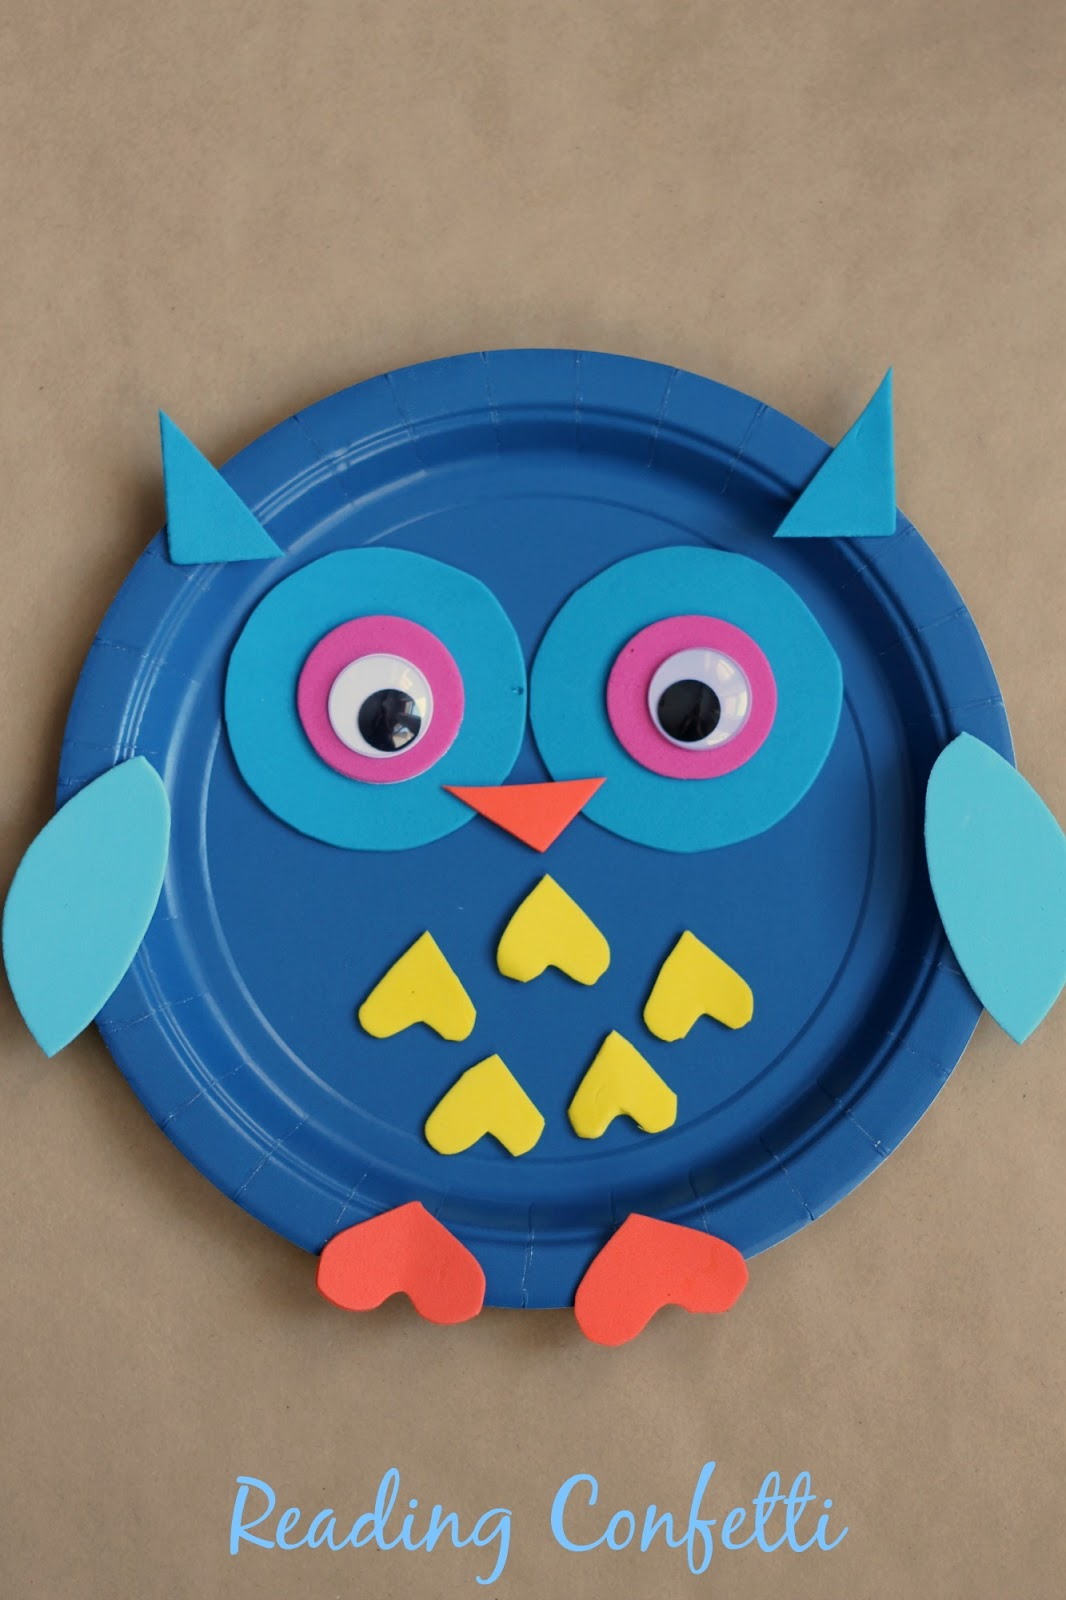 Fall Crafts with Owls for Kids. Paper Plate ... & Crafts Archives - Page 7 of 17 - JDaniel4s Mom